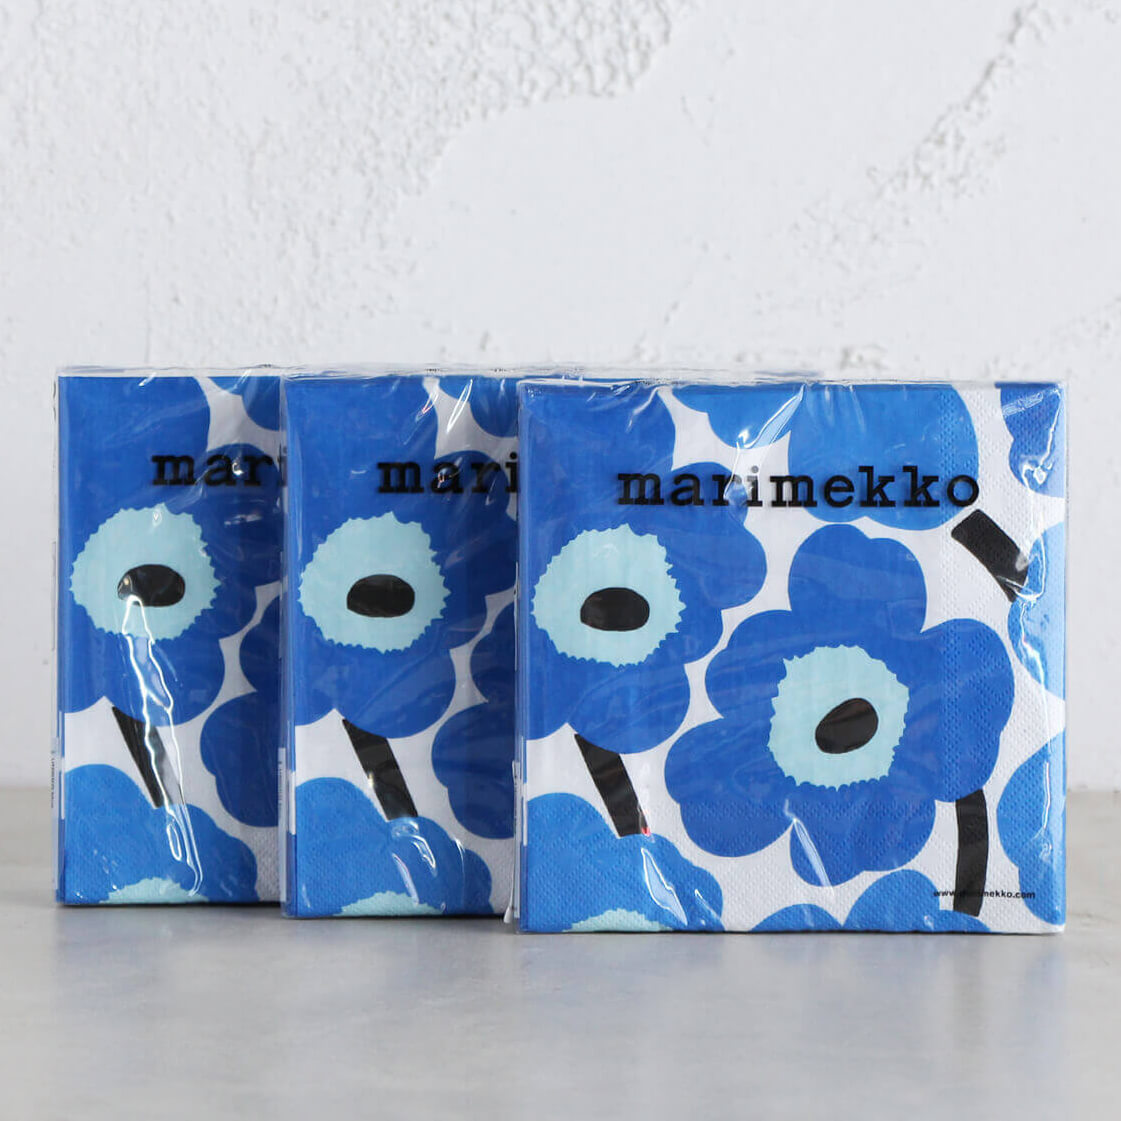 MARIMEKKO  |  UNIKKO PAPER NAPKIN BUNDLE  | DARK BLUE + LIGHT BLUE  |  PAPER SERVIETTES